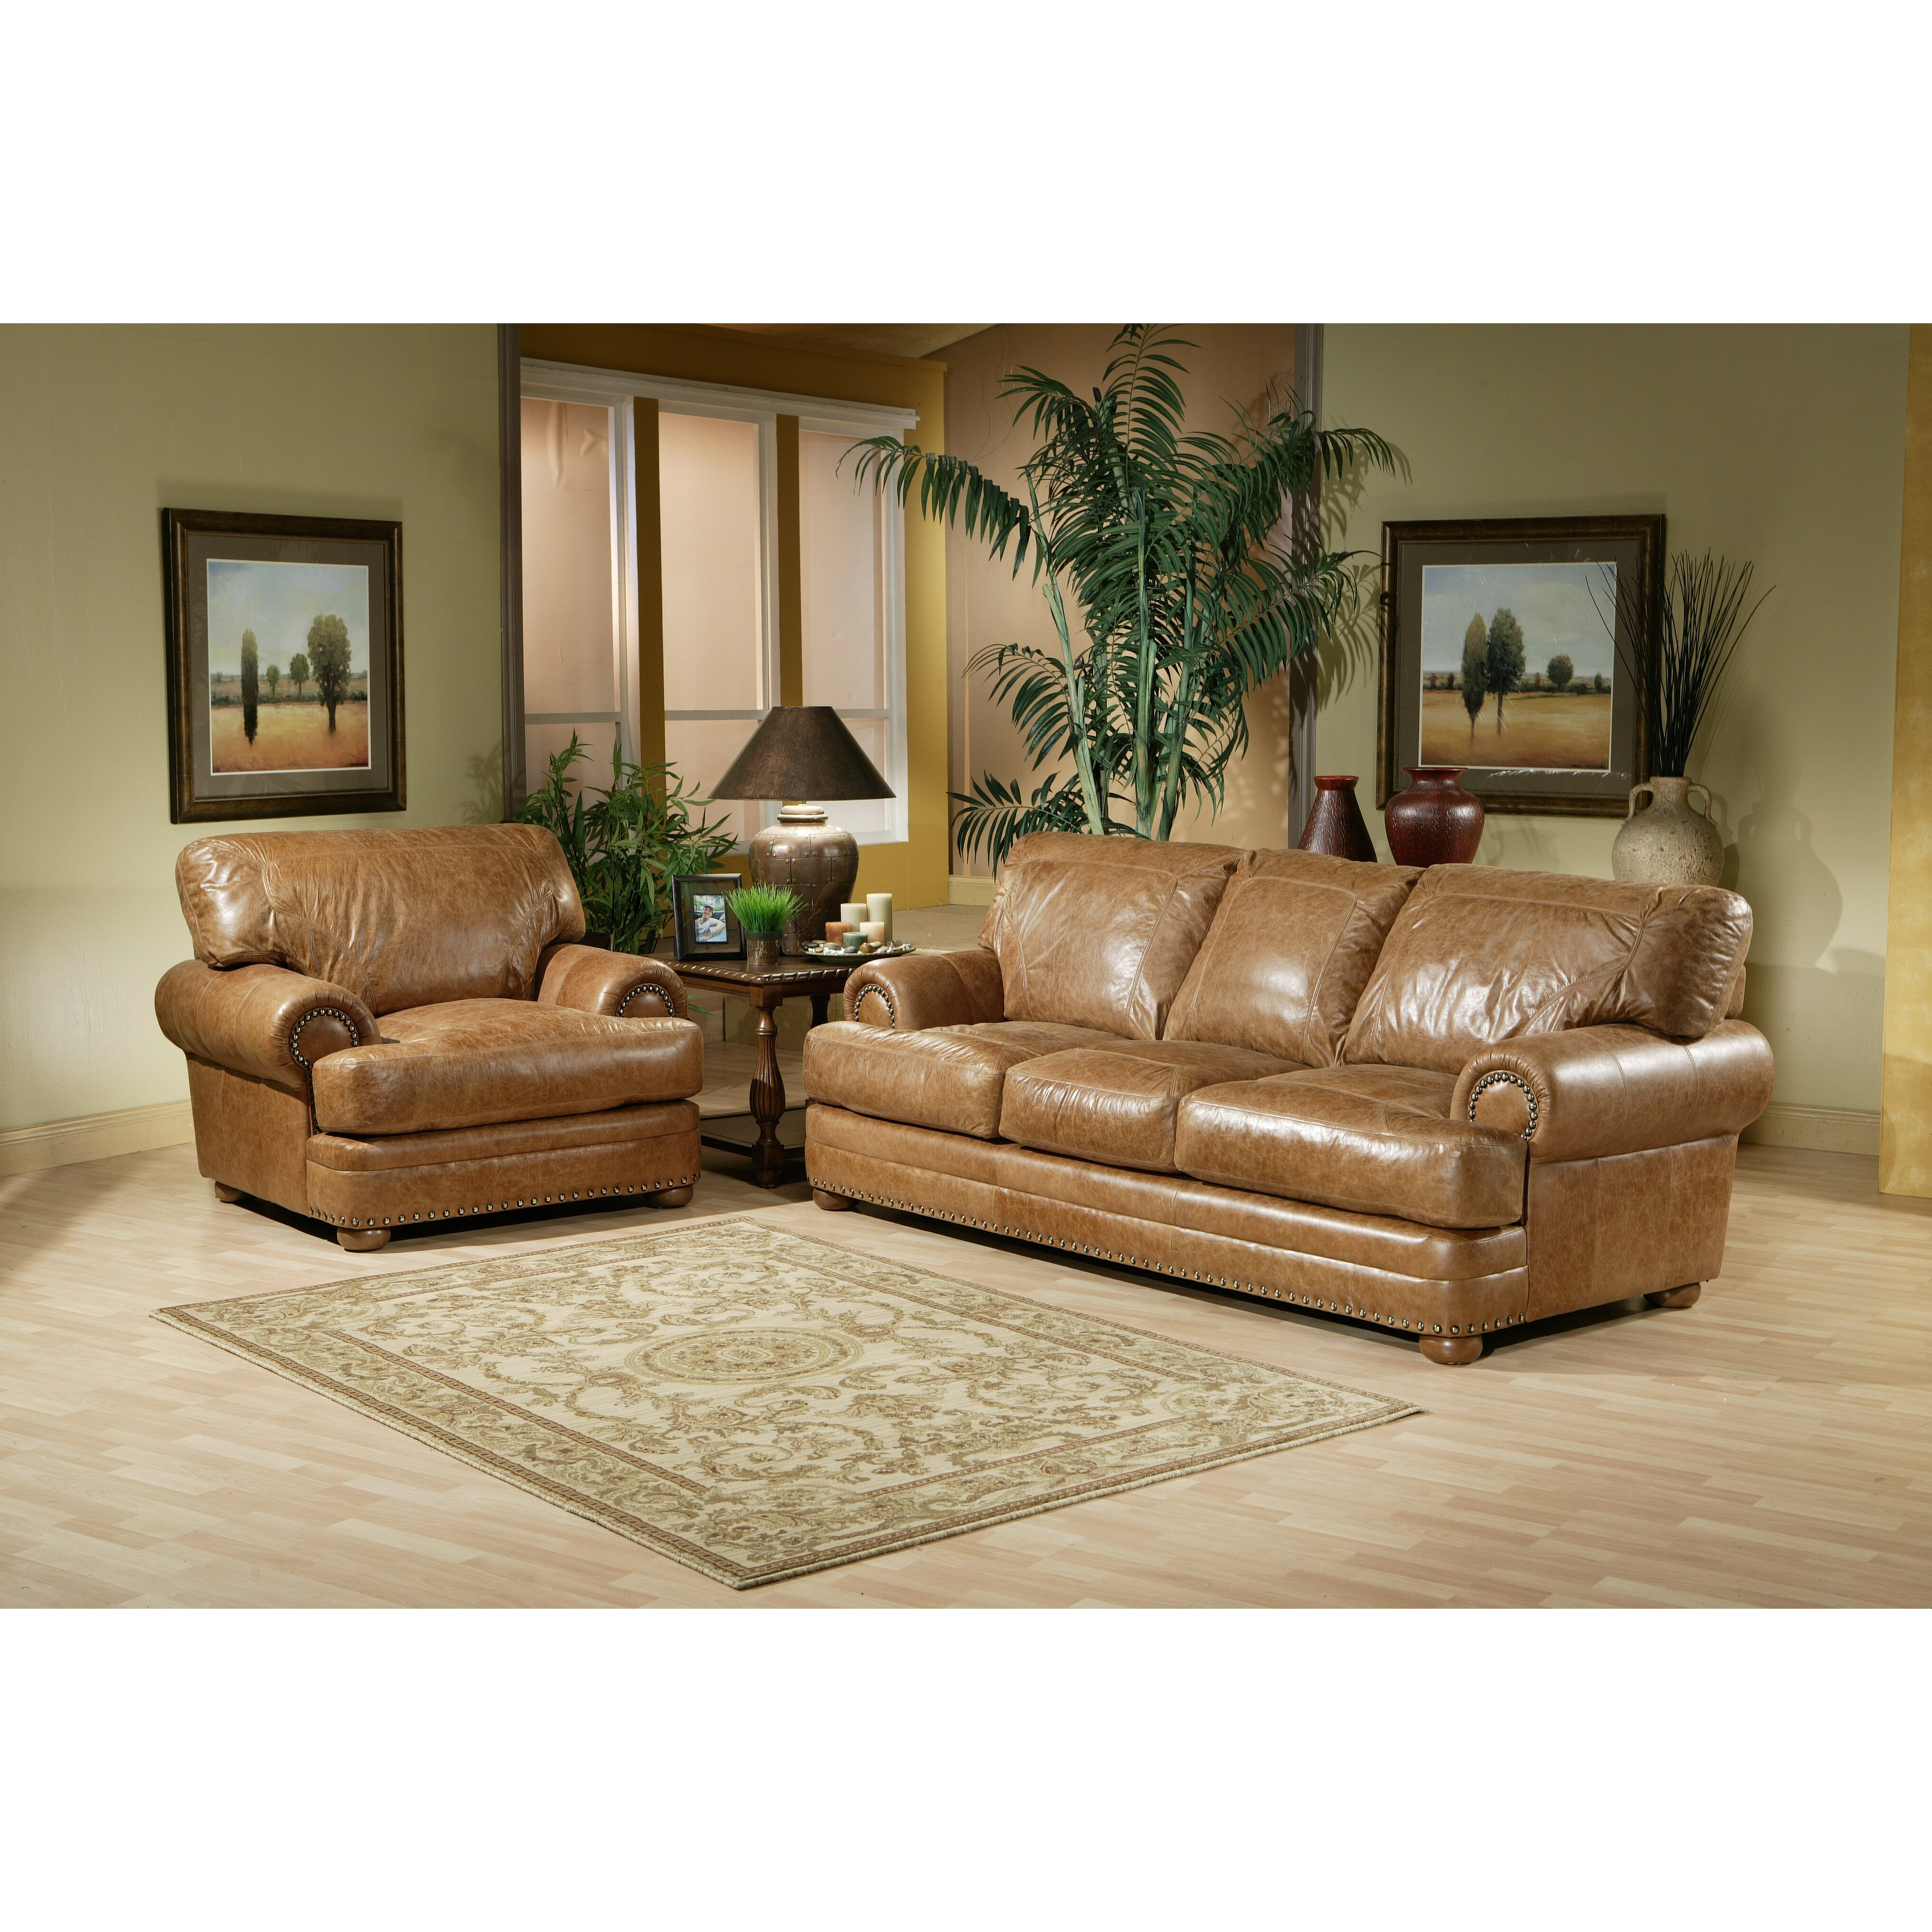 Omnia leather houston leather living room set reviews for Room smart furniture houston